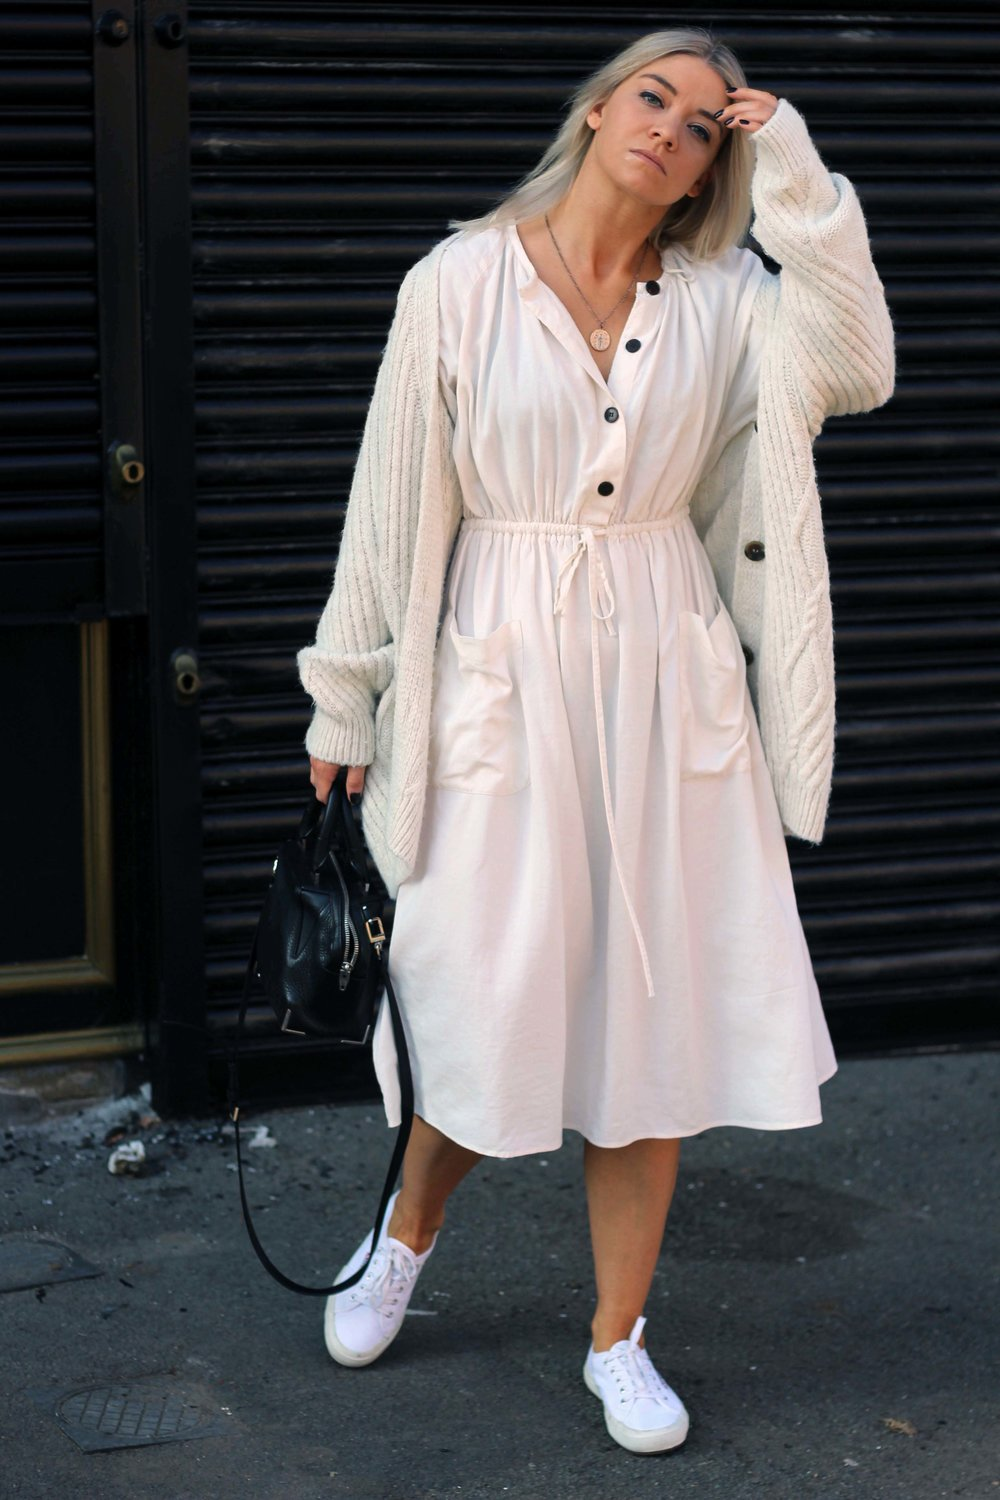 zara linen dress, cream cardigan, superga trainers, northern magpie, joey taylor 1